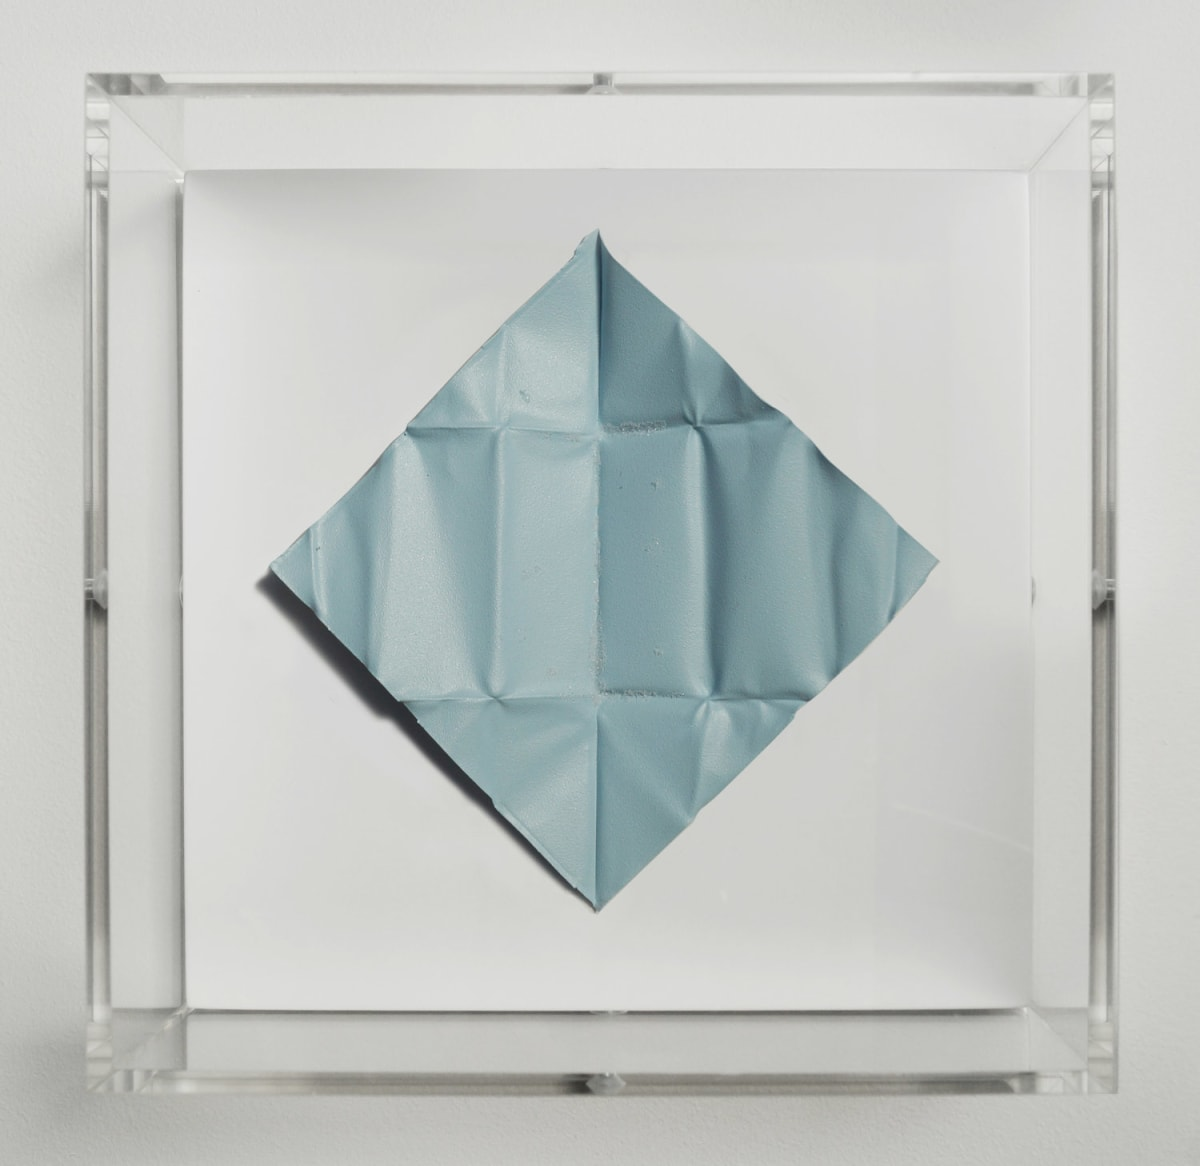 Mat Collishaw The Release - Azure Blue Light, 2018 Diamond dust, folded aluminium, wood, acrylic, paint FRAMED 18.5 x 18.5 x 6.5 cm Edition of 10 Signed and numbered